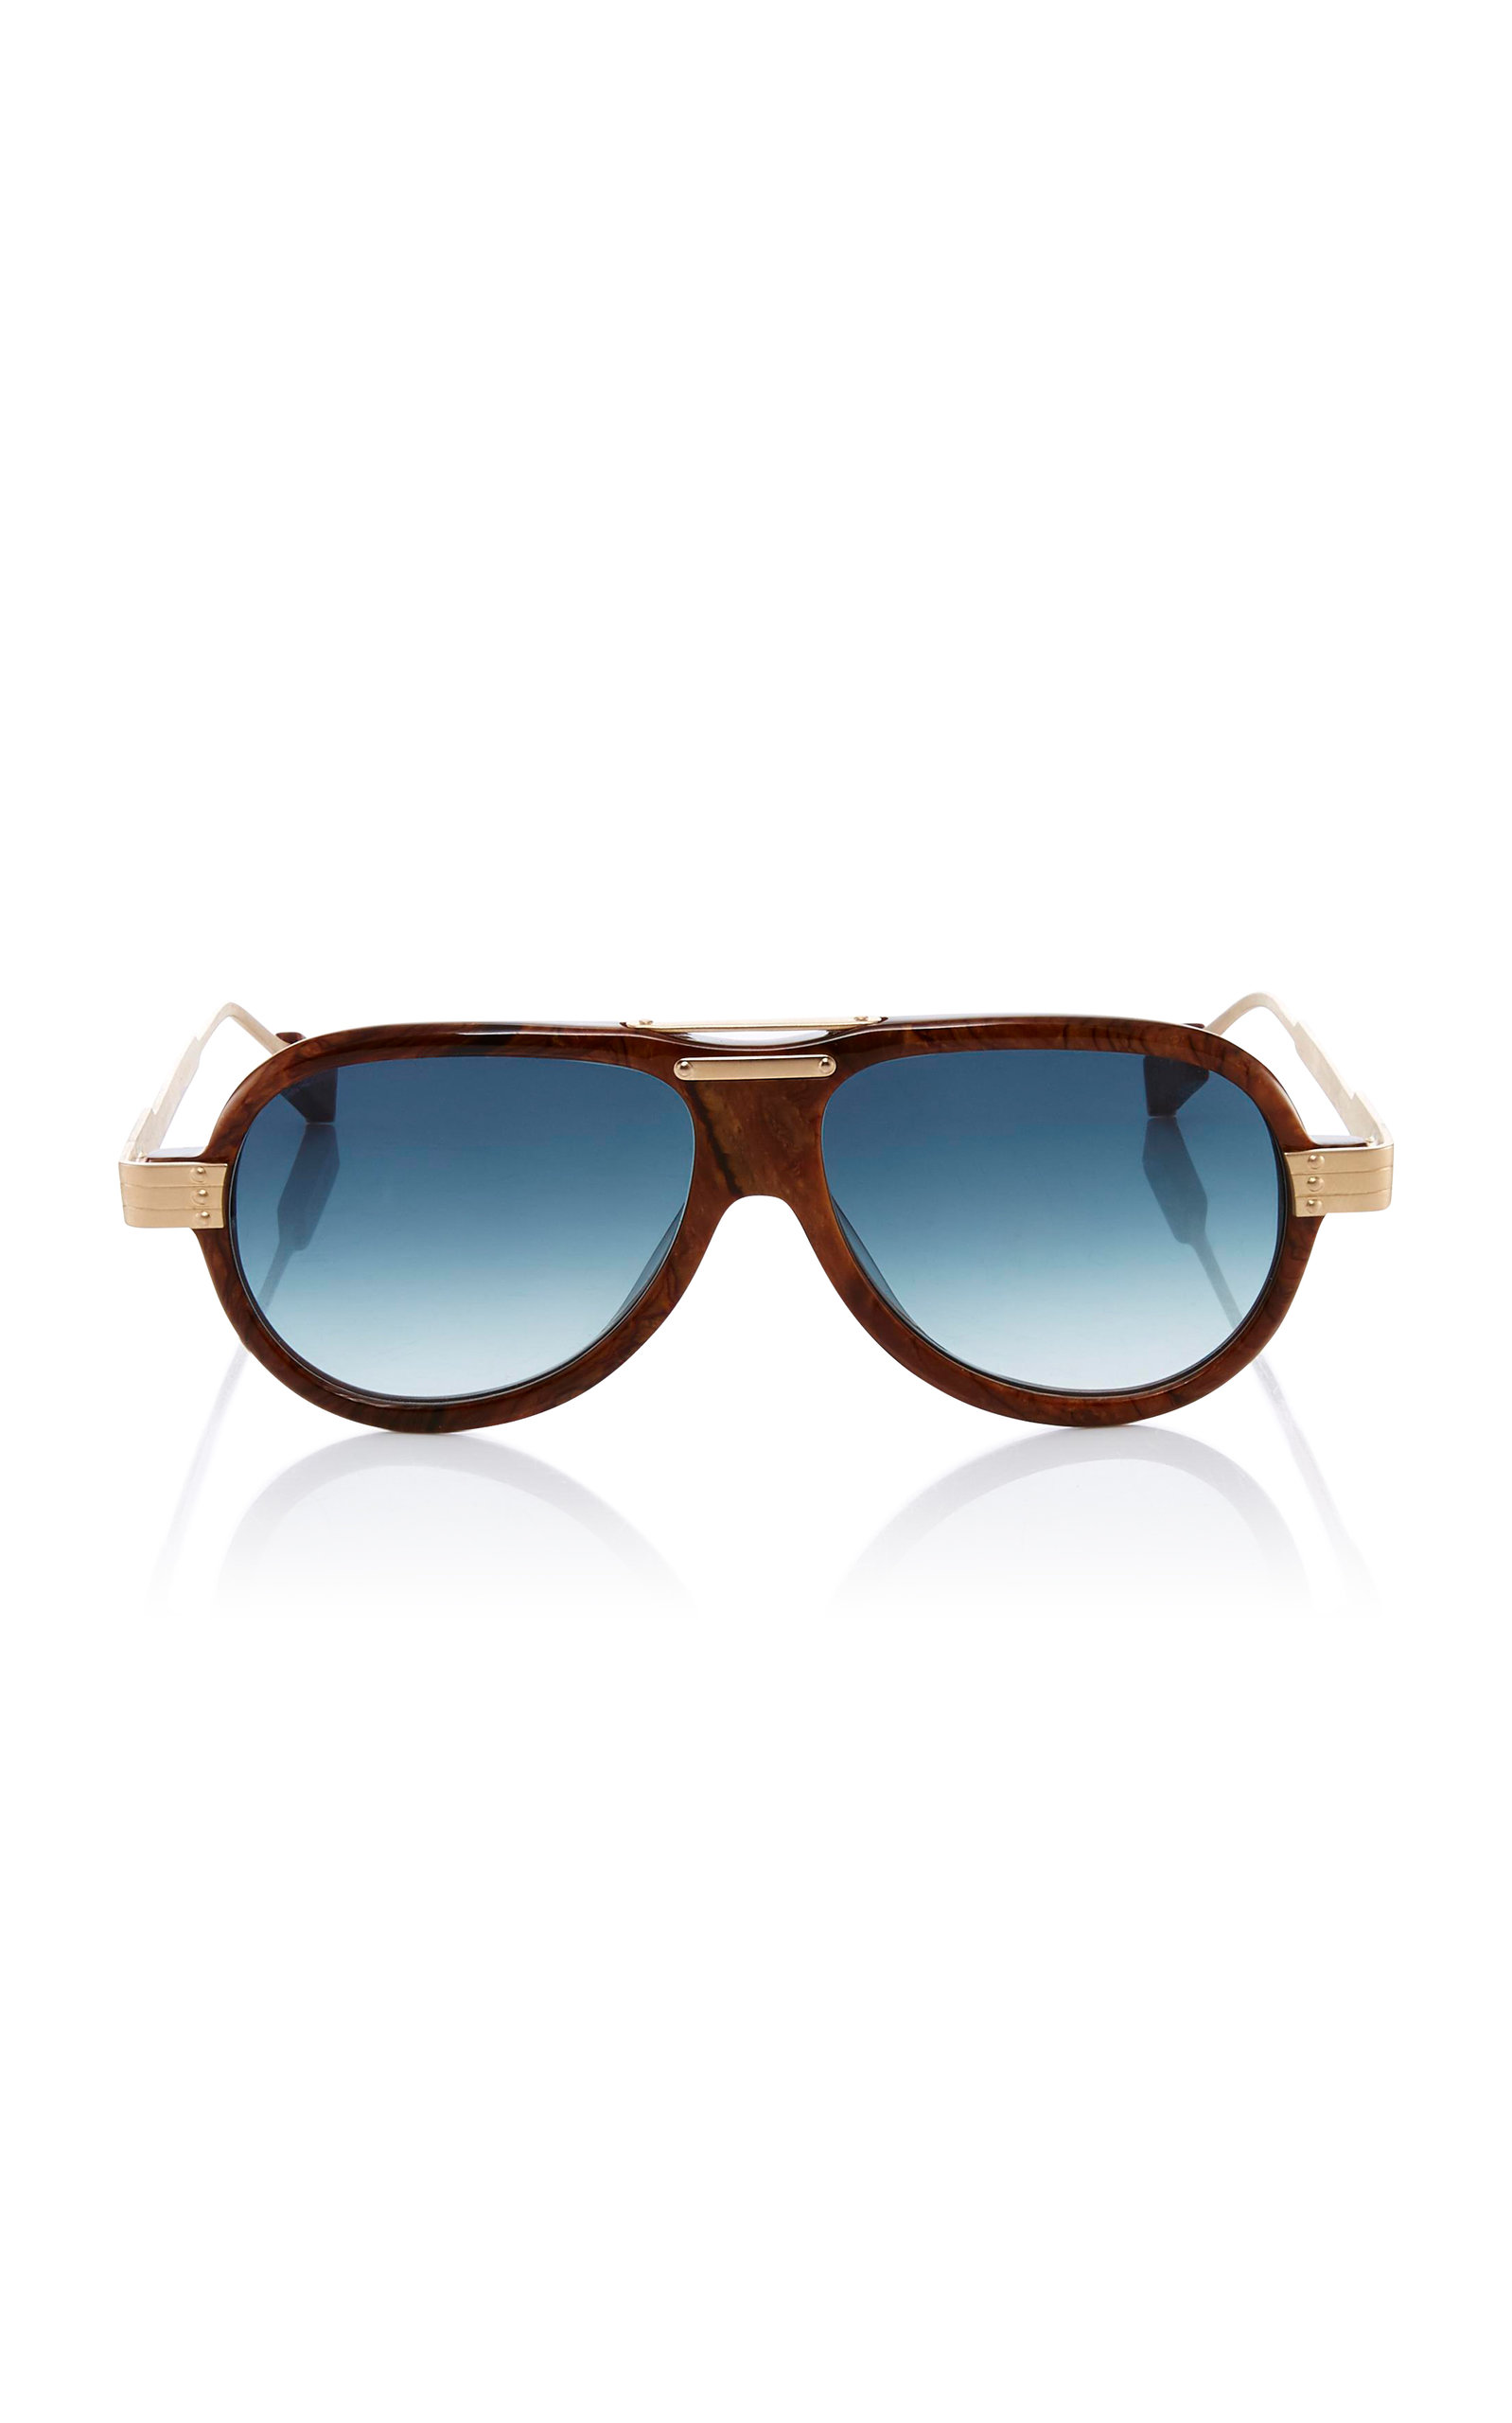 ROSIE ASSOULIN X MORGENTHAL FREDERICS Astro Pop Aviator Sunglasses in Brown